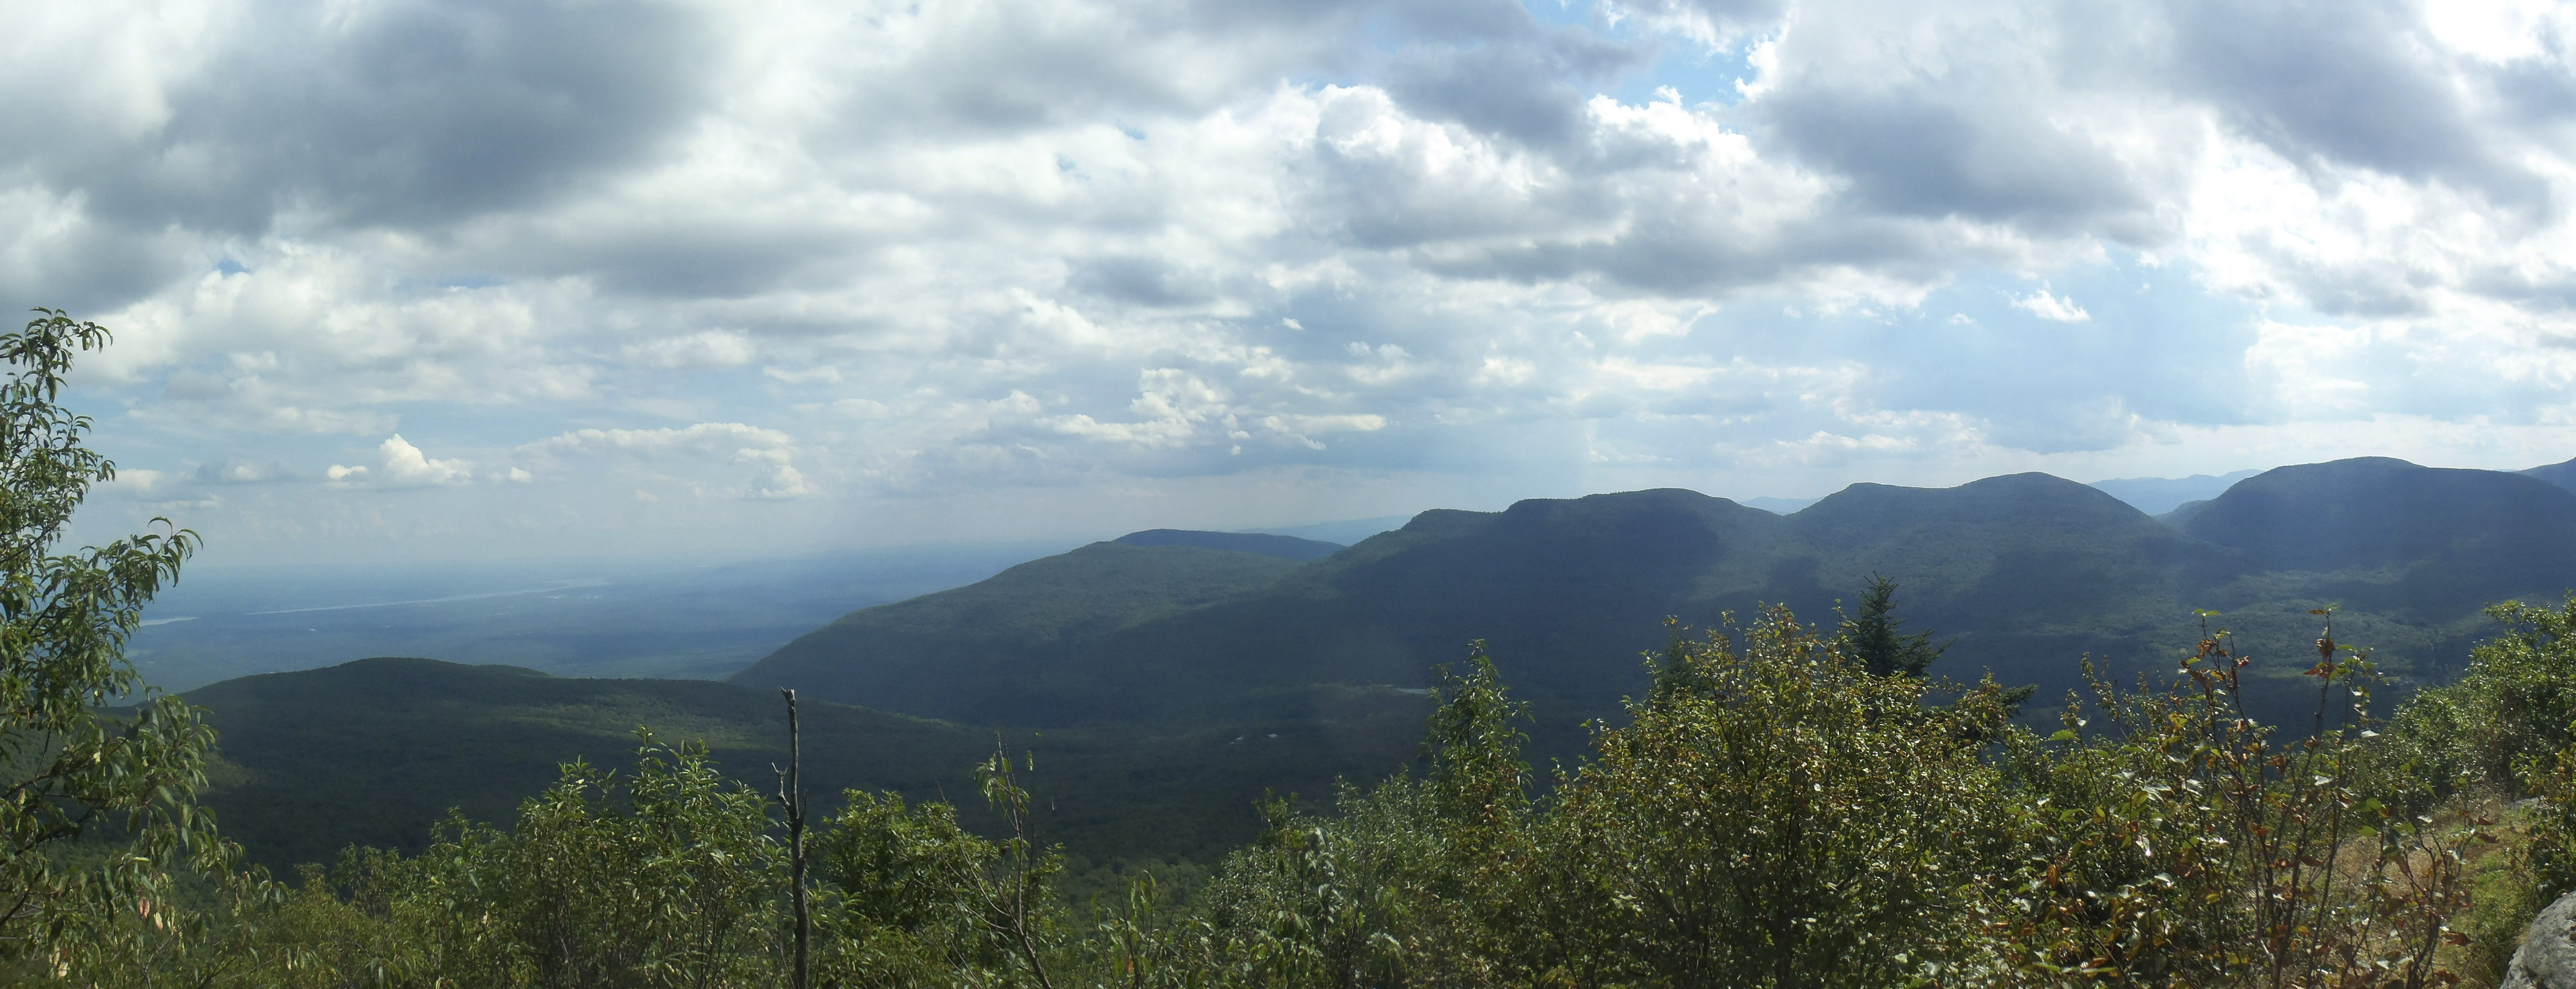 Kaaterskill High Peak | Wiki | Everipedia